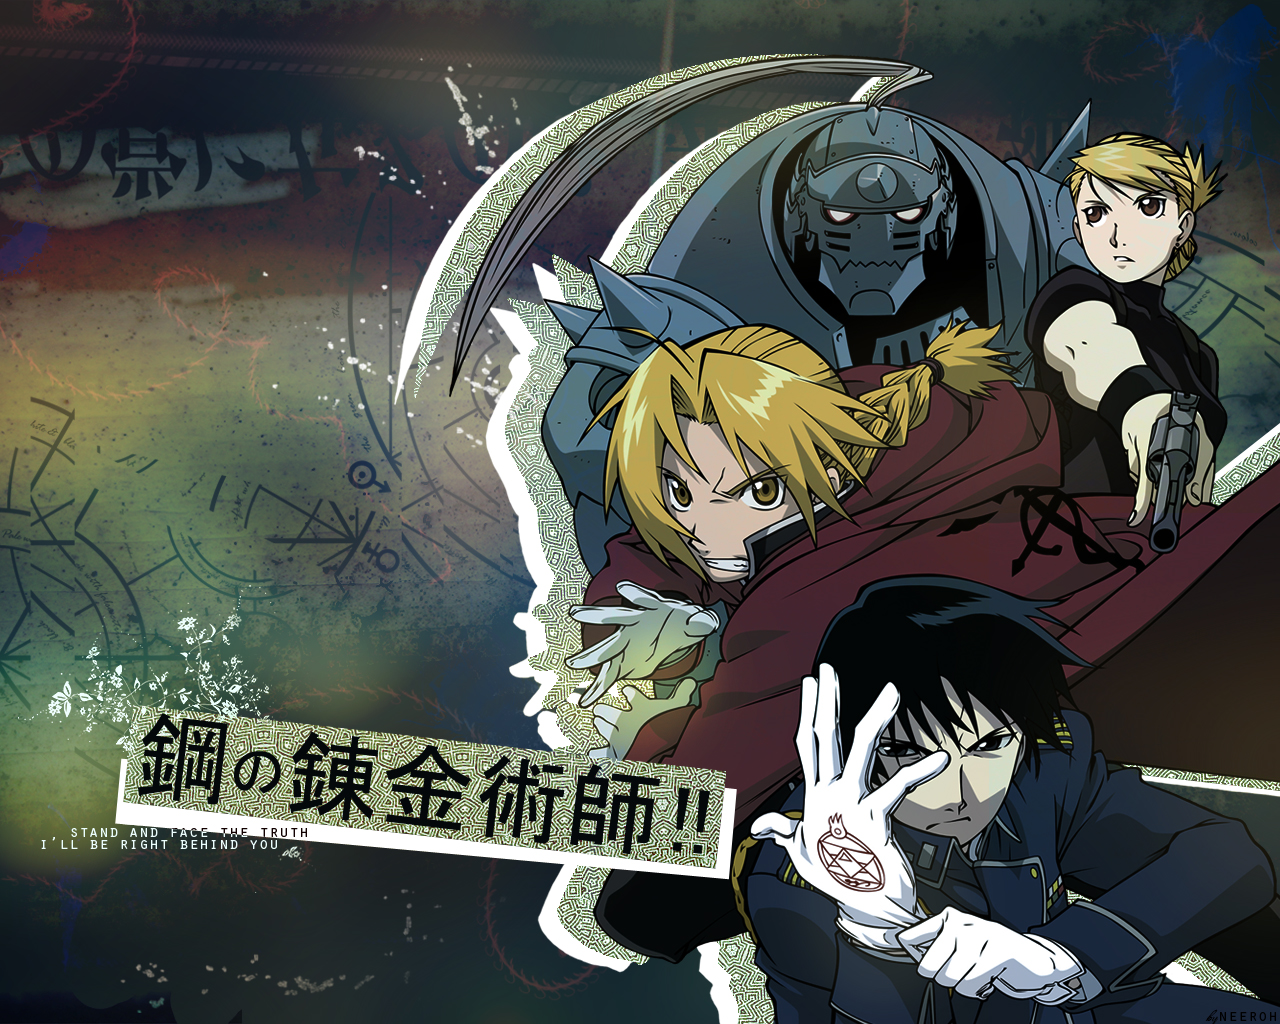 FullMetal Alchemist Computer Wallpapers Desktop Backgrounds 1280x1024 1280x1024